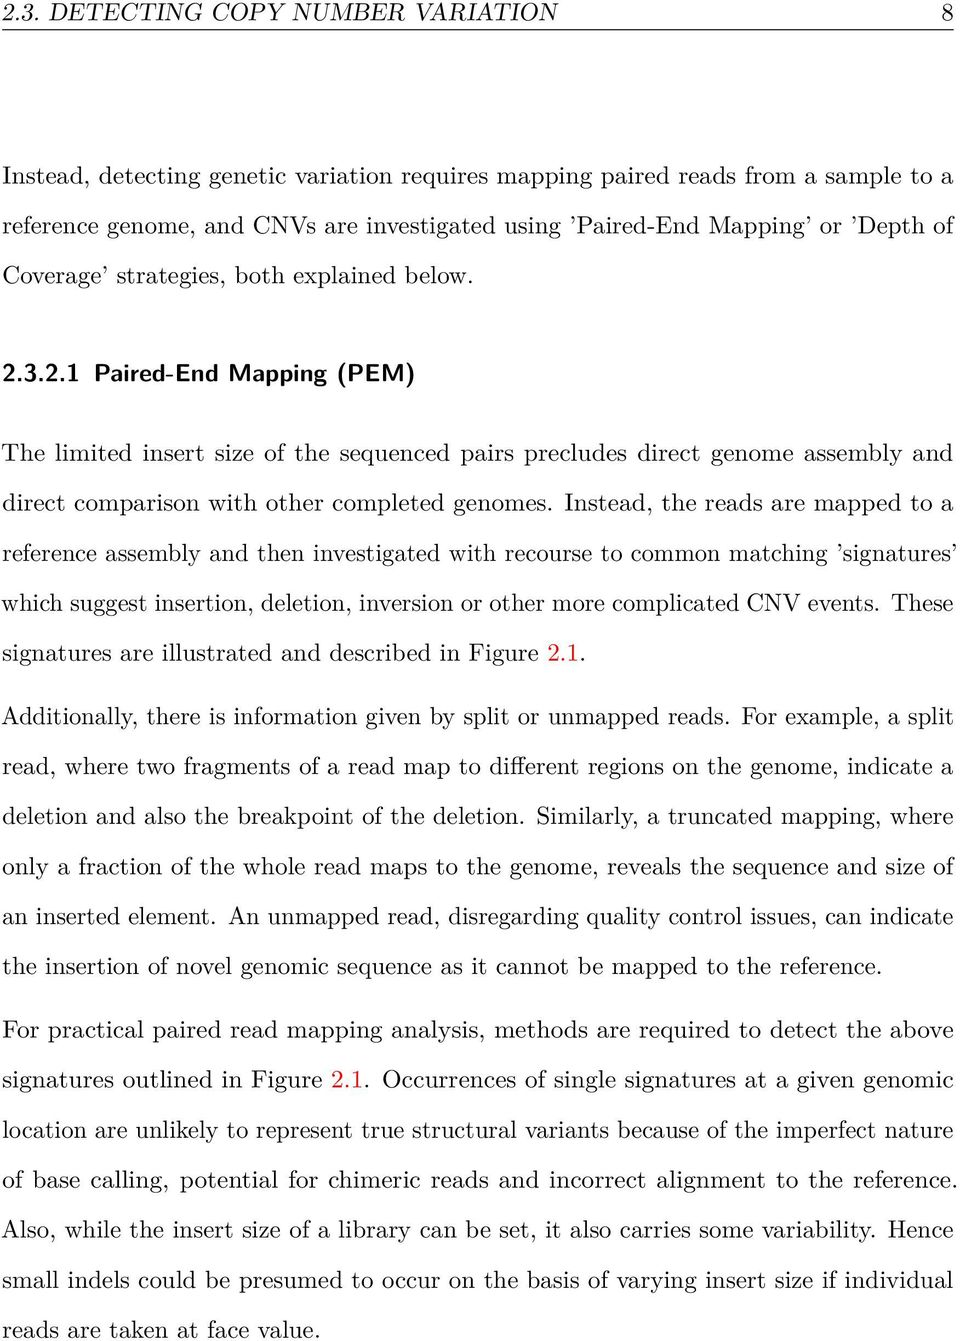 3.2.1 Paired-End Mapping (PEM) The limited insert size of the sequenced pairs precludes direct genome assembly and direct comparison with other completed genomes.